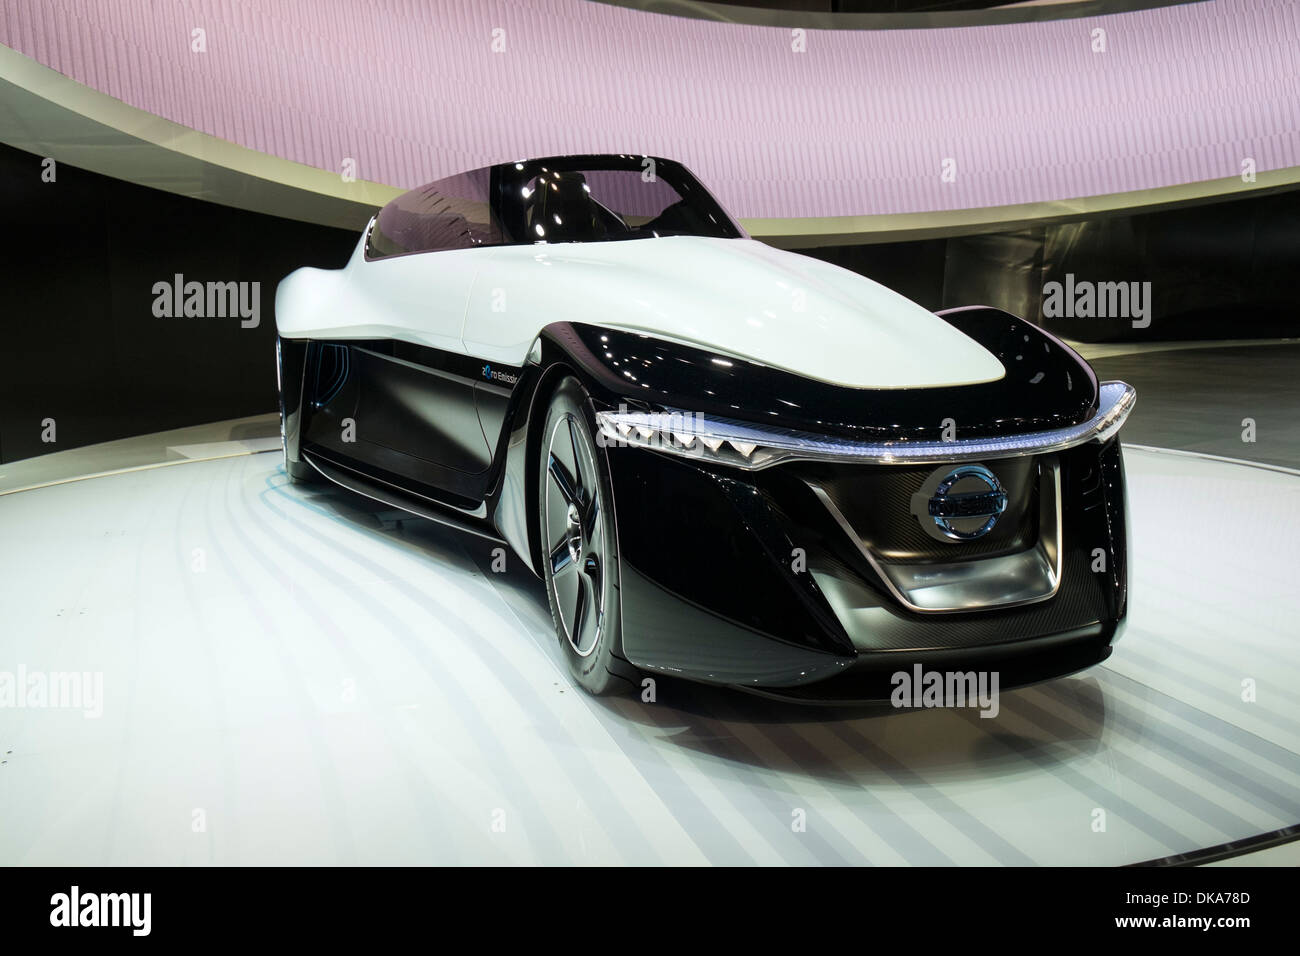 Nissan Bladeglider concept electric car at Tokyo Motor Show 2013 in Japan - Stock Image